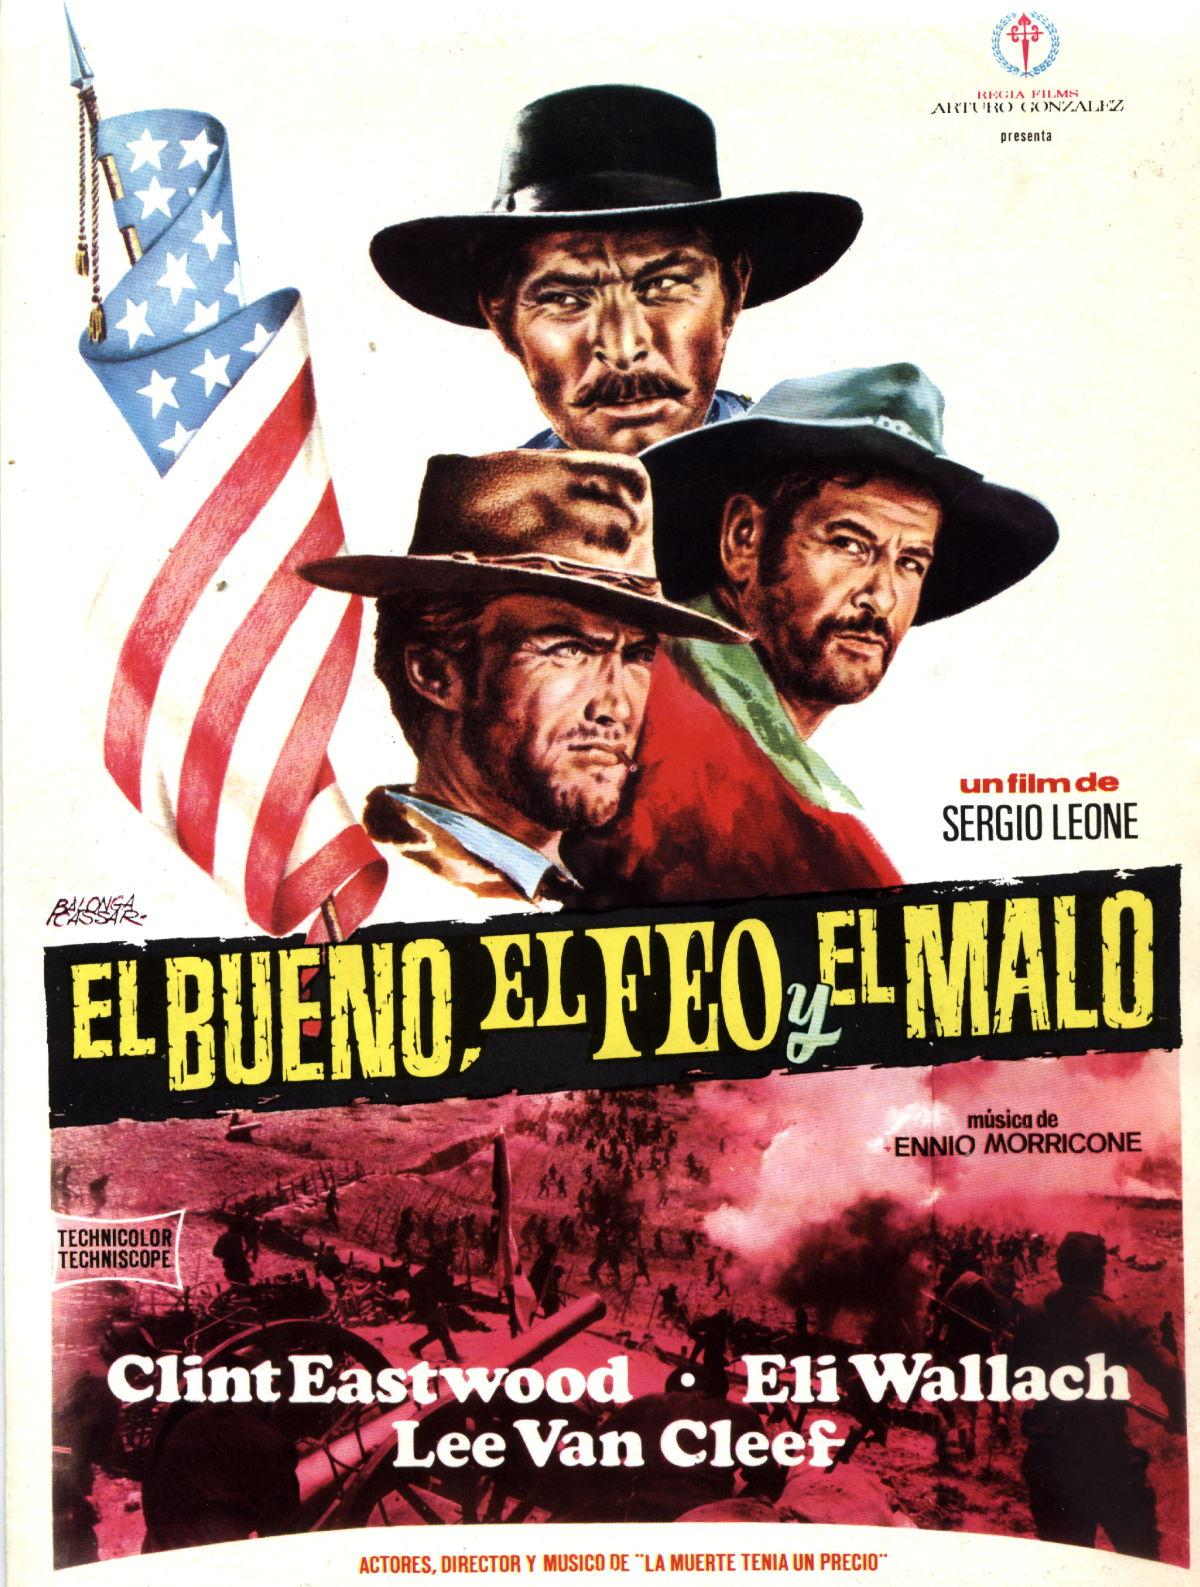 Andalucia Destino de Cine - The Good, the Bad and the Ugly